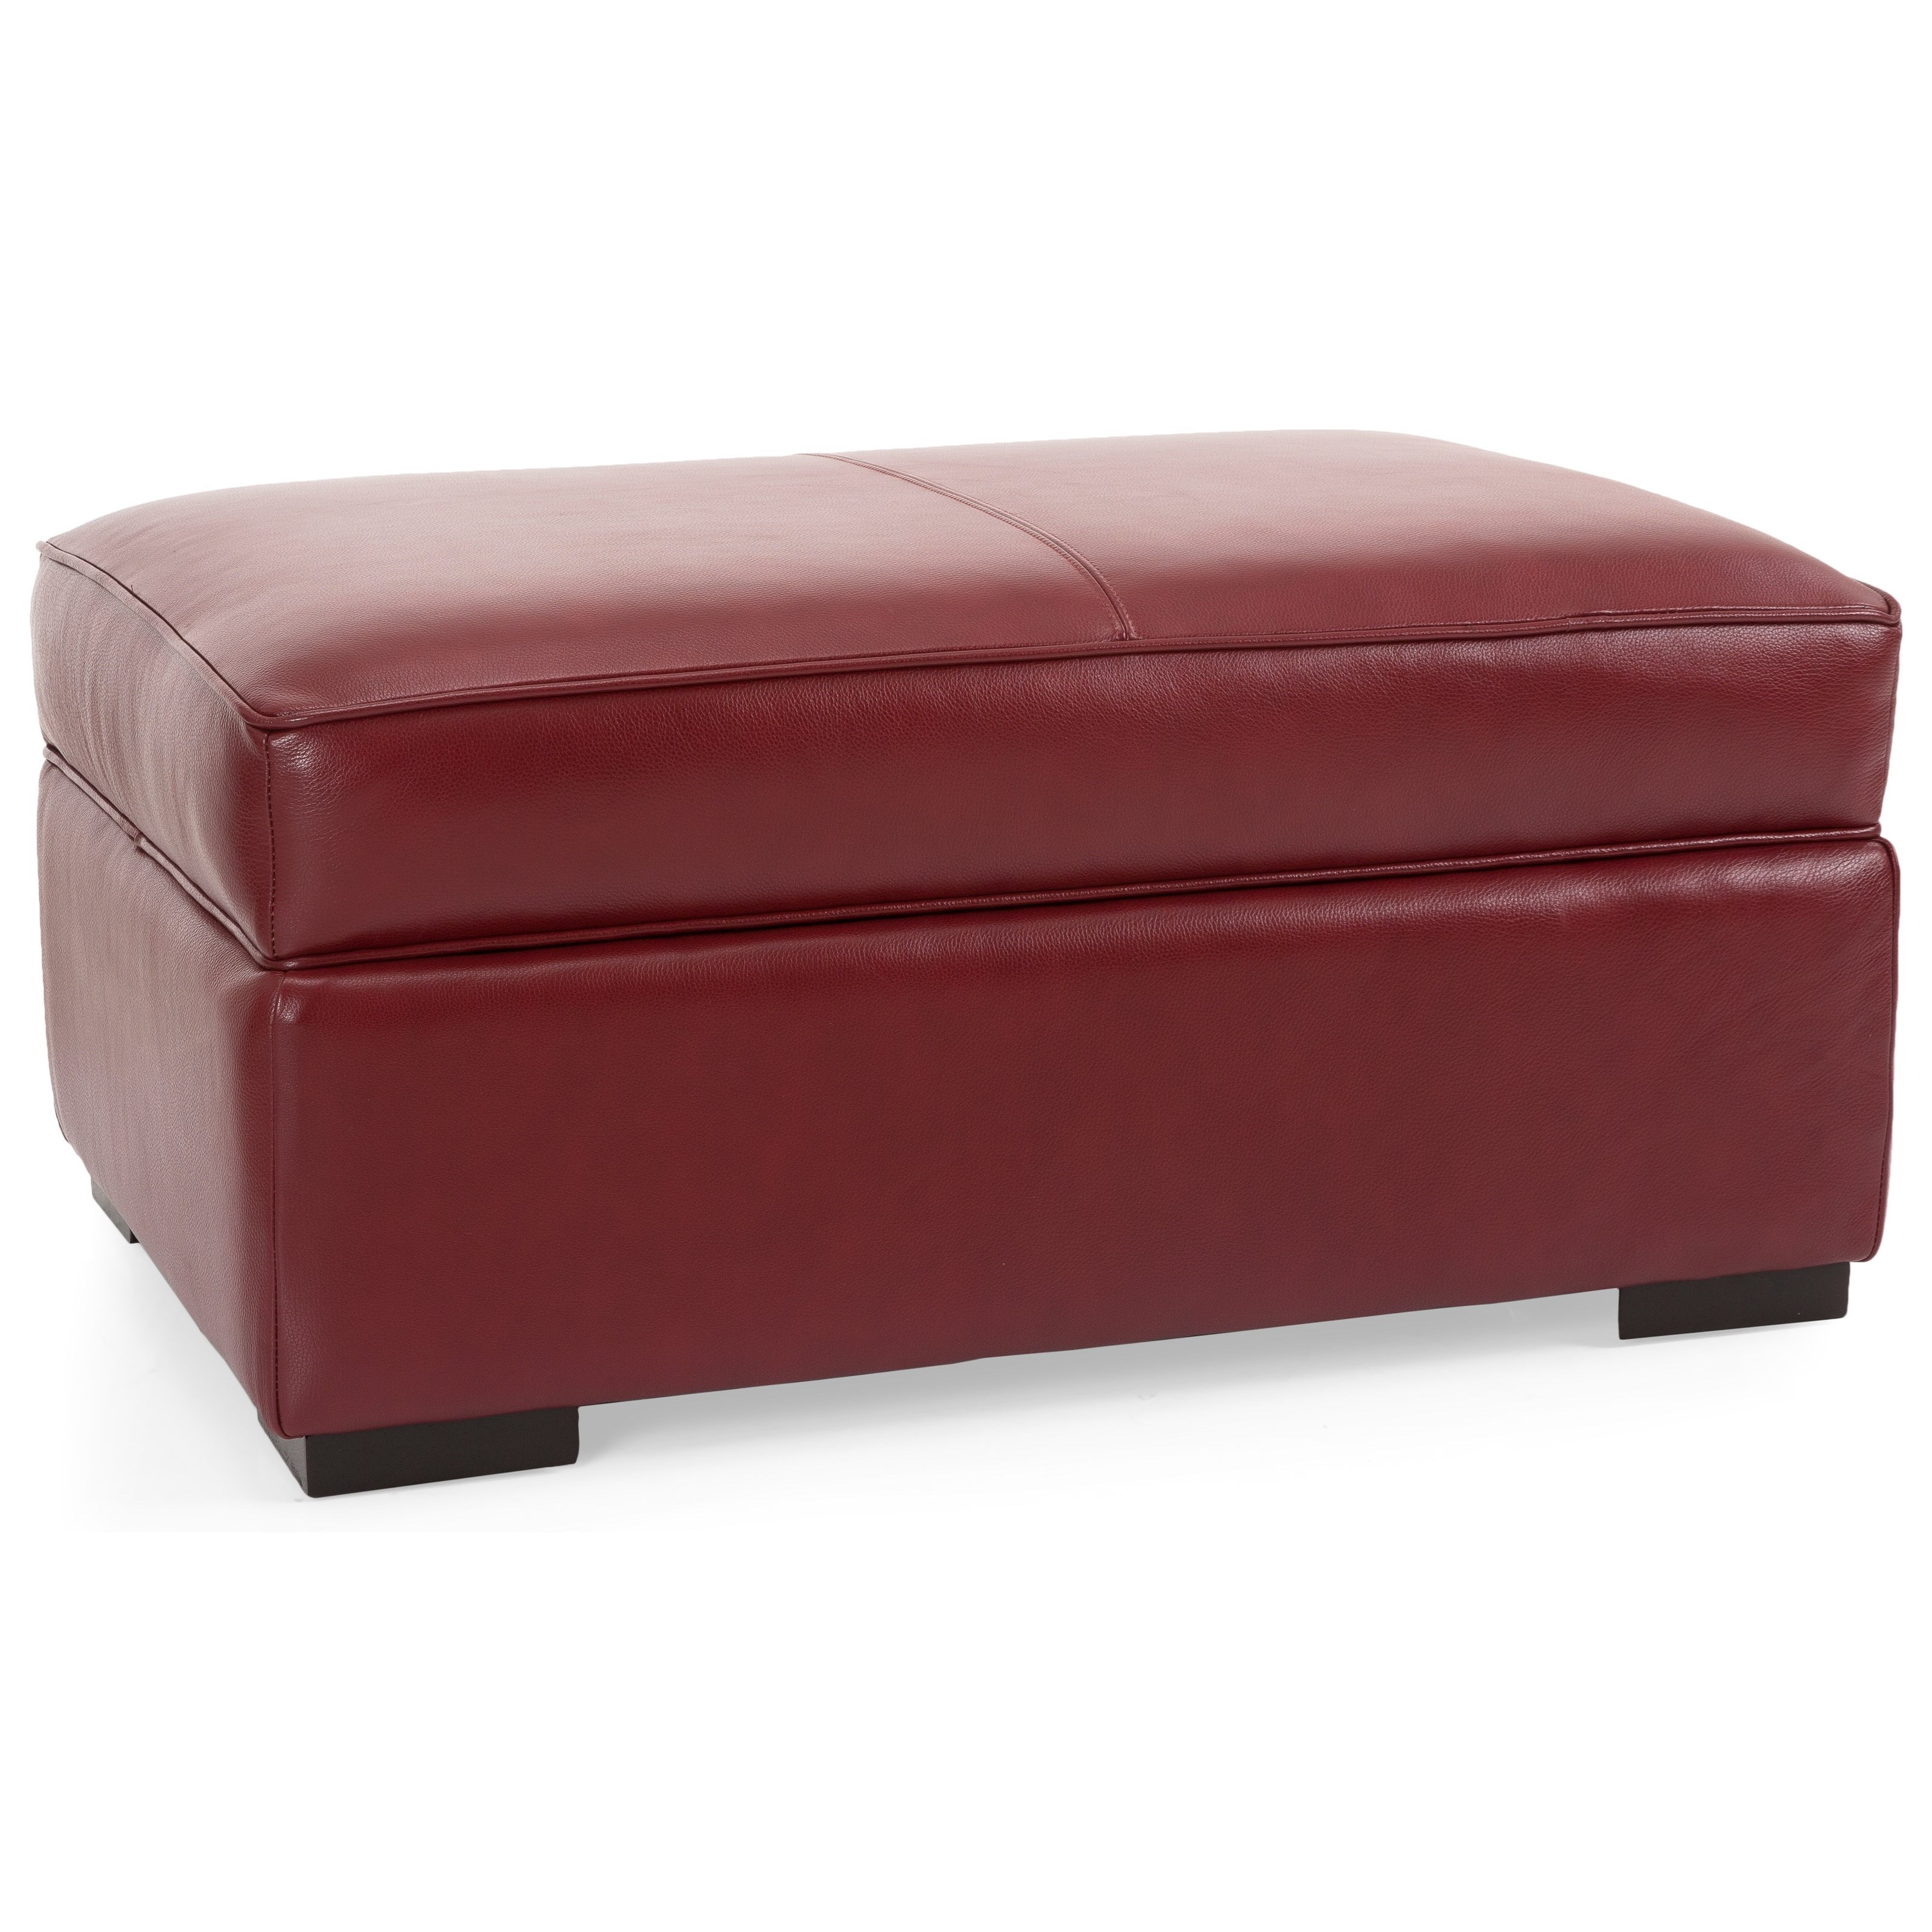 2900 Storage Ottoman by Decor-Rest at Rooms for Less